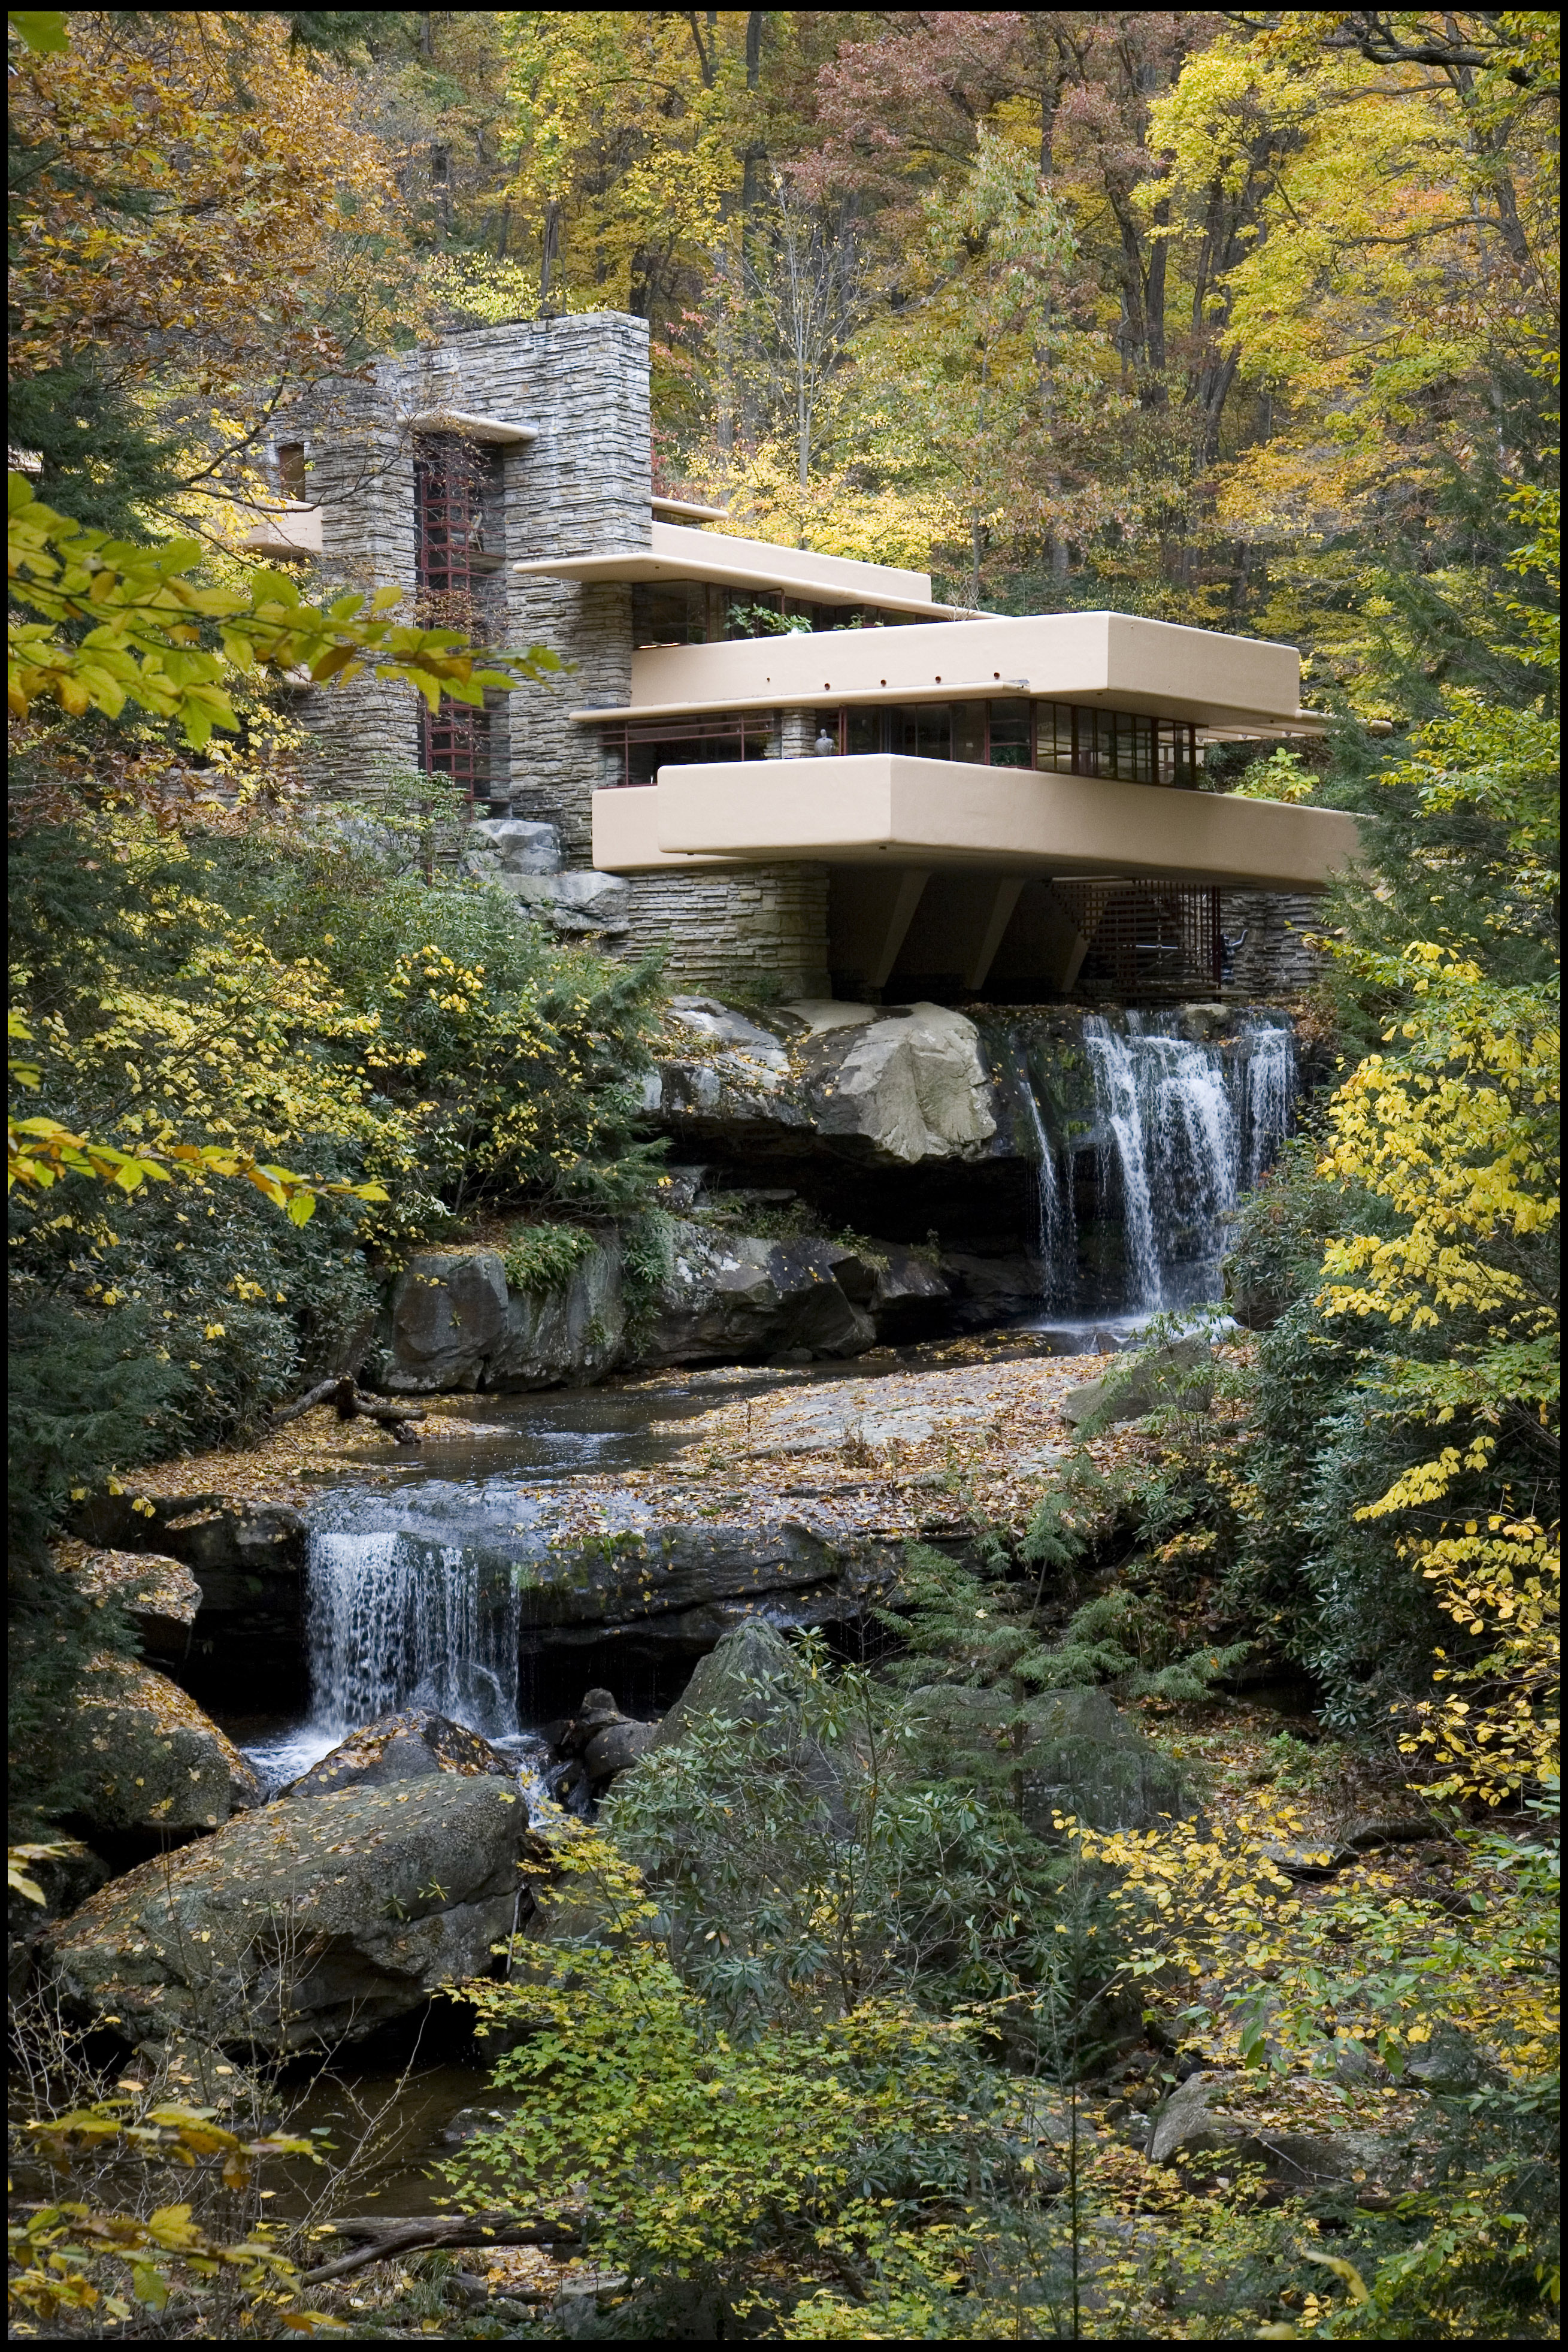 How Frank Lloyd Wright's 'Fallingwater' Home Changed Architecture Forever